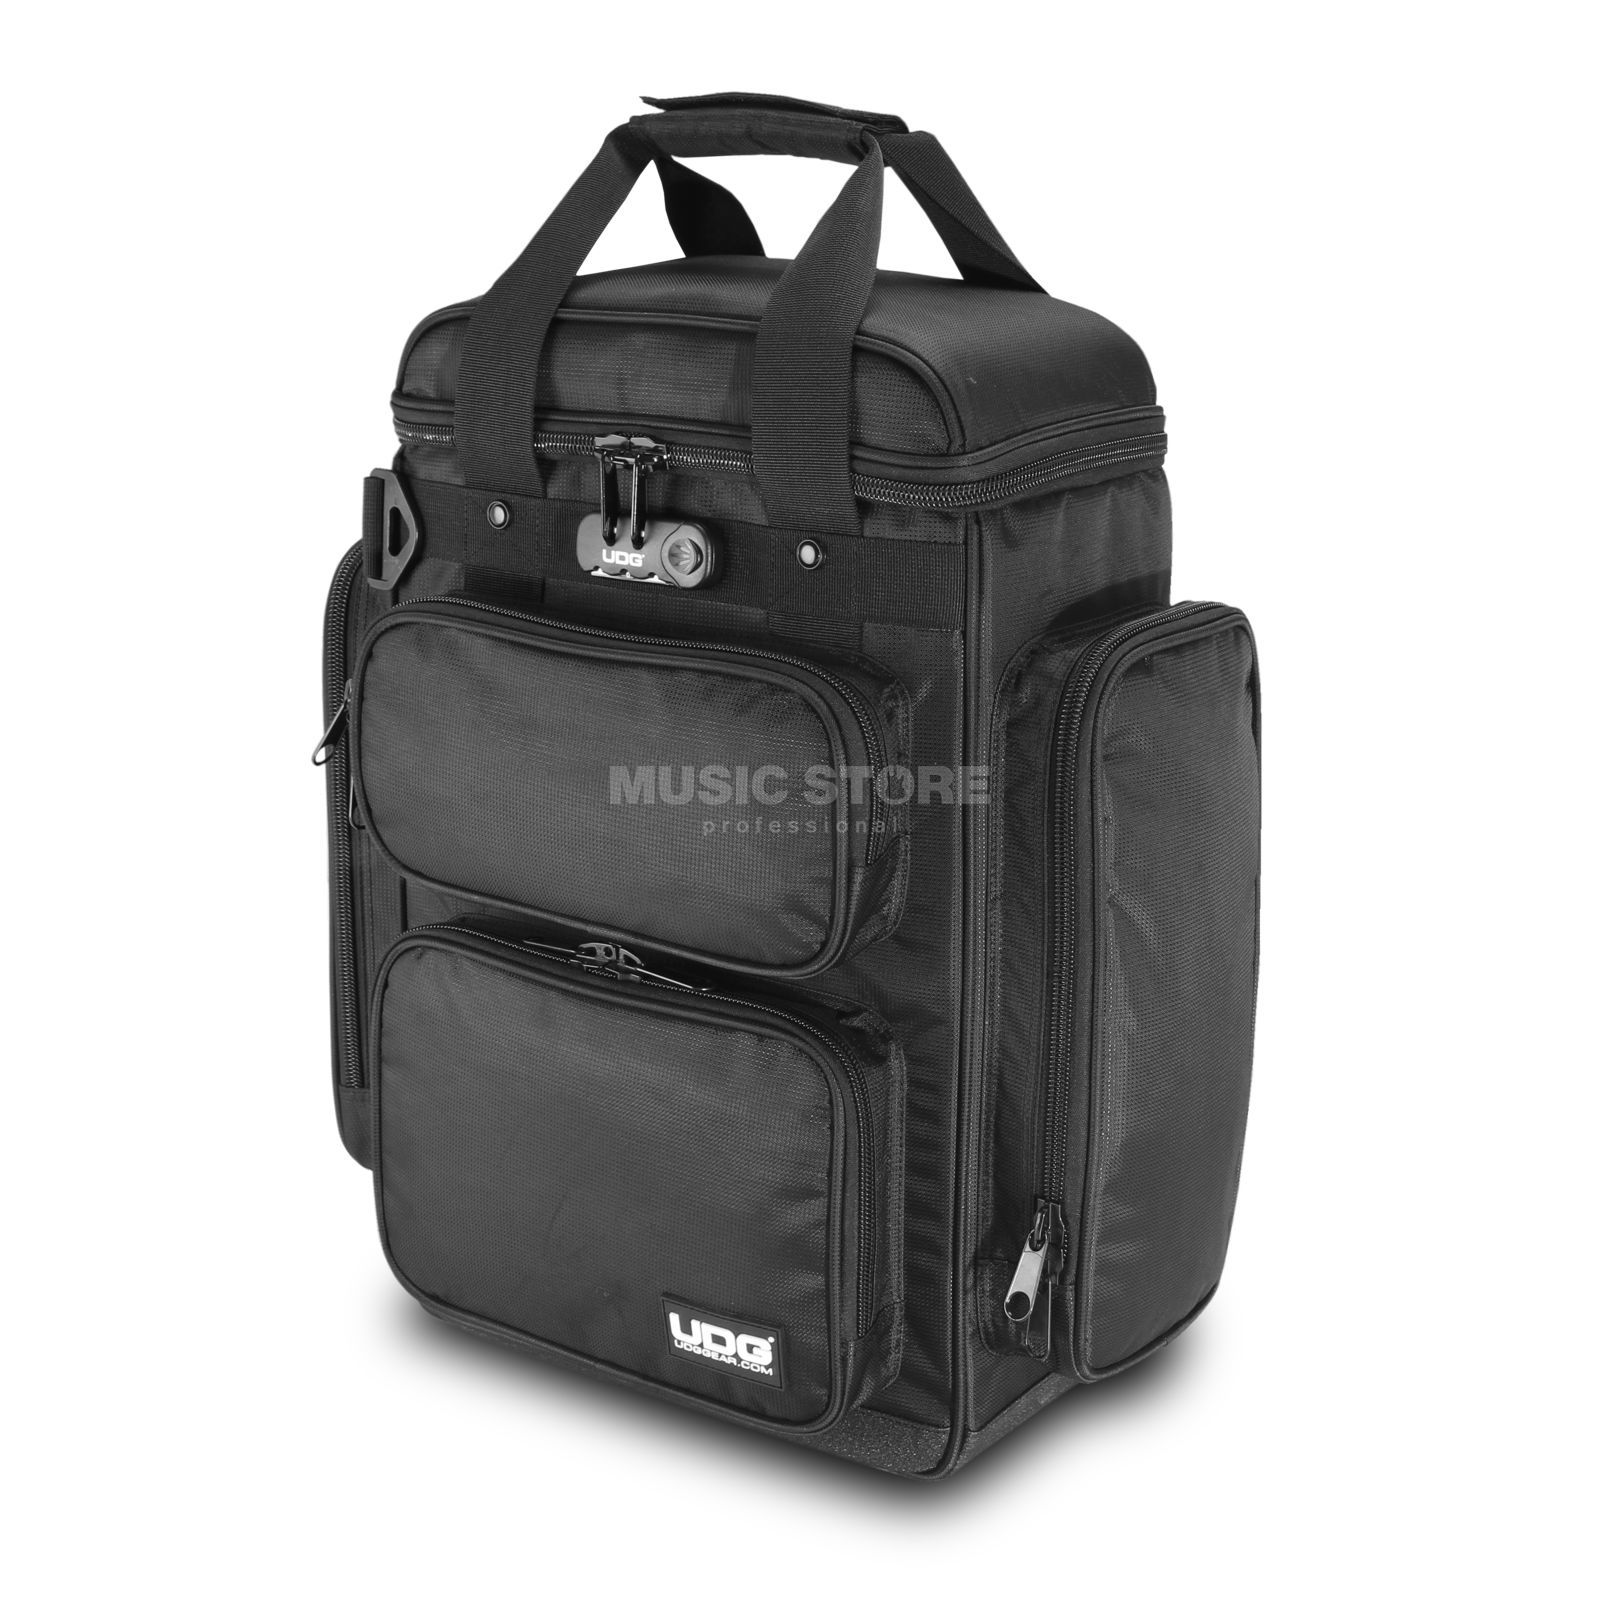 UDG ProducerBag Large Black/Orange (U9022BL/OR) Image du produit